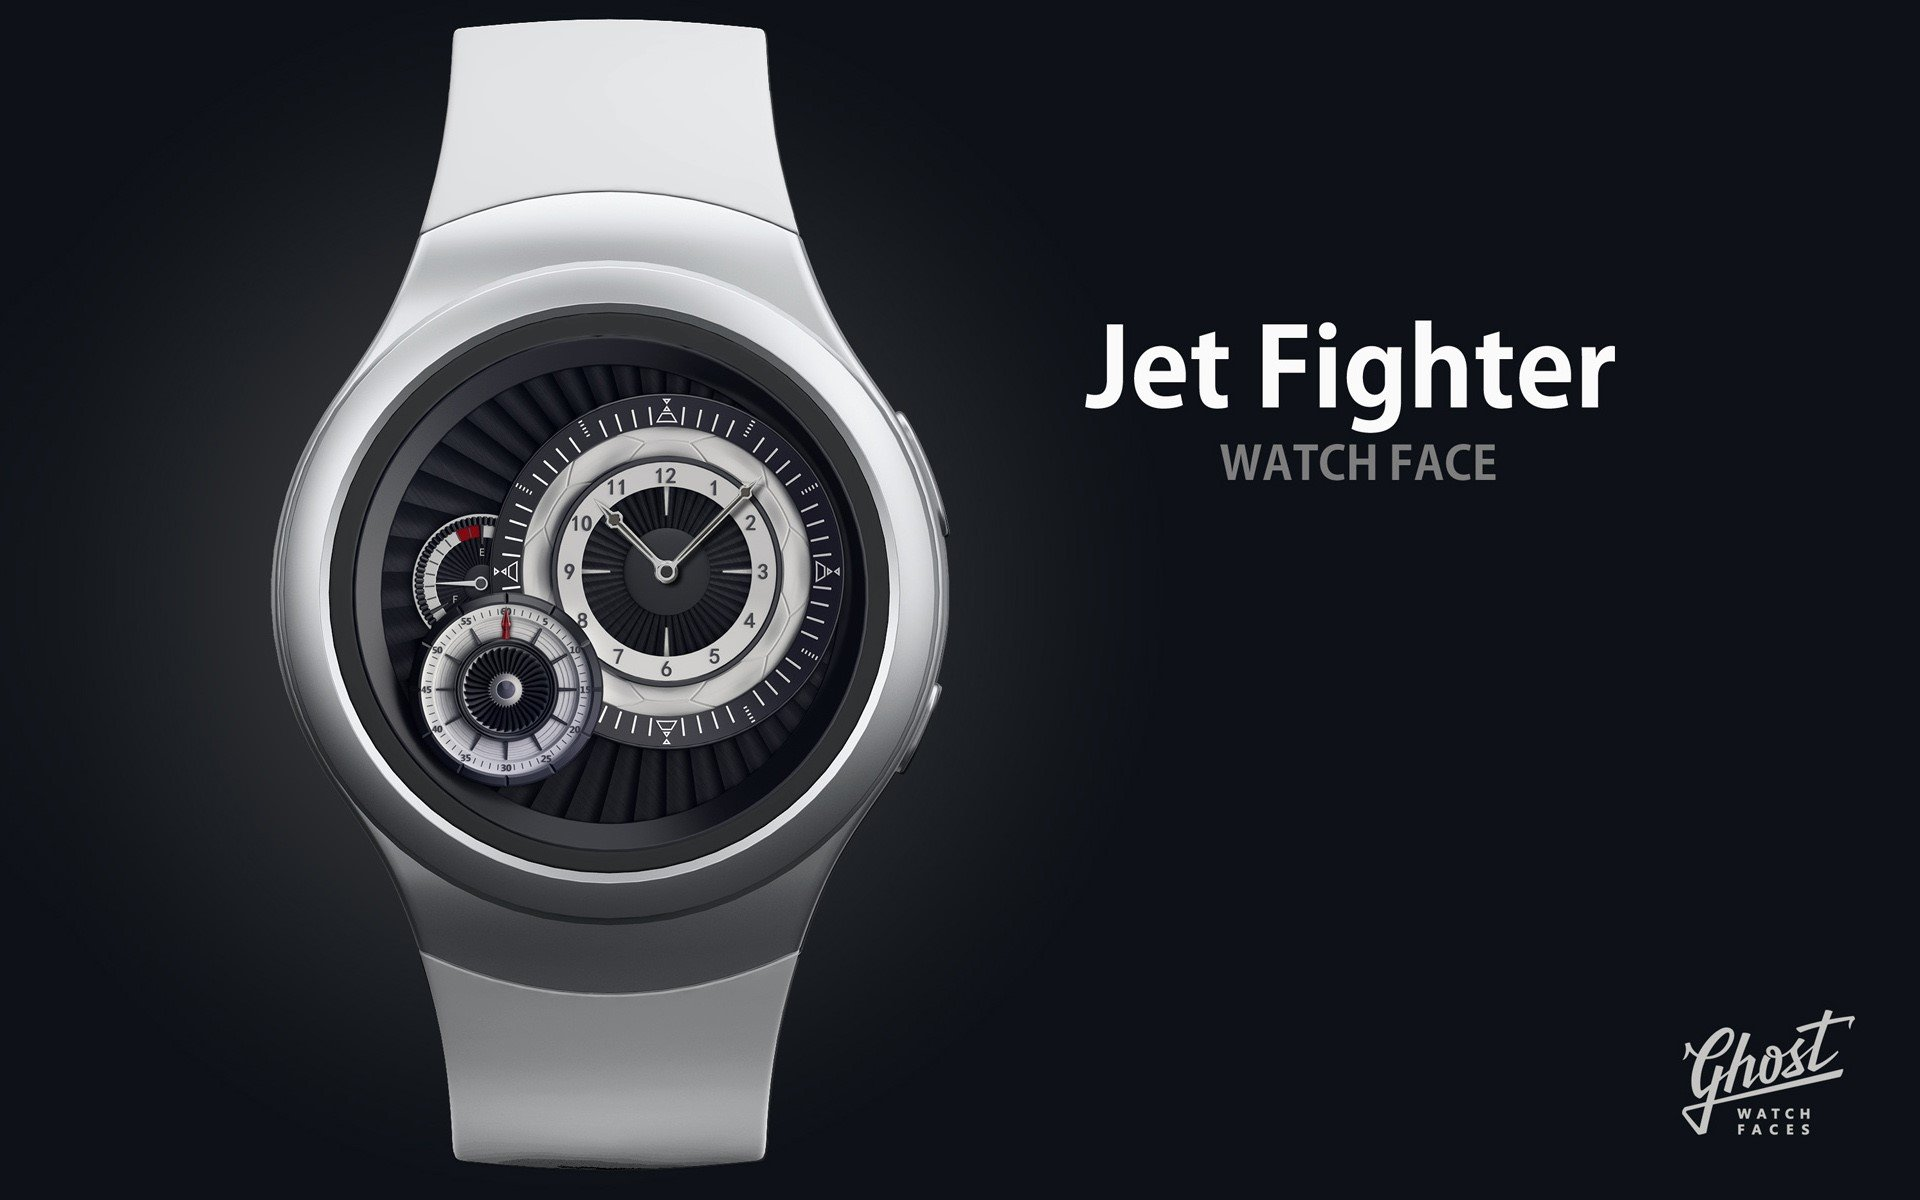 Jet Fighter Watch Face Alternatives and Similar Apps